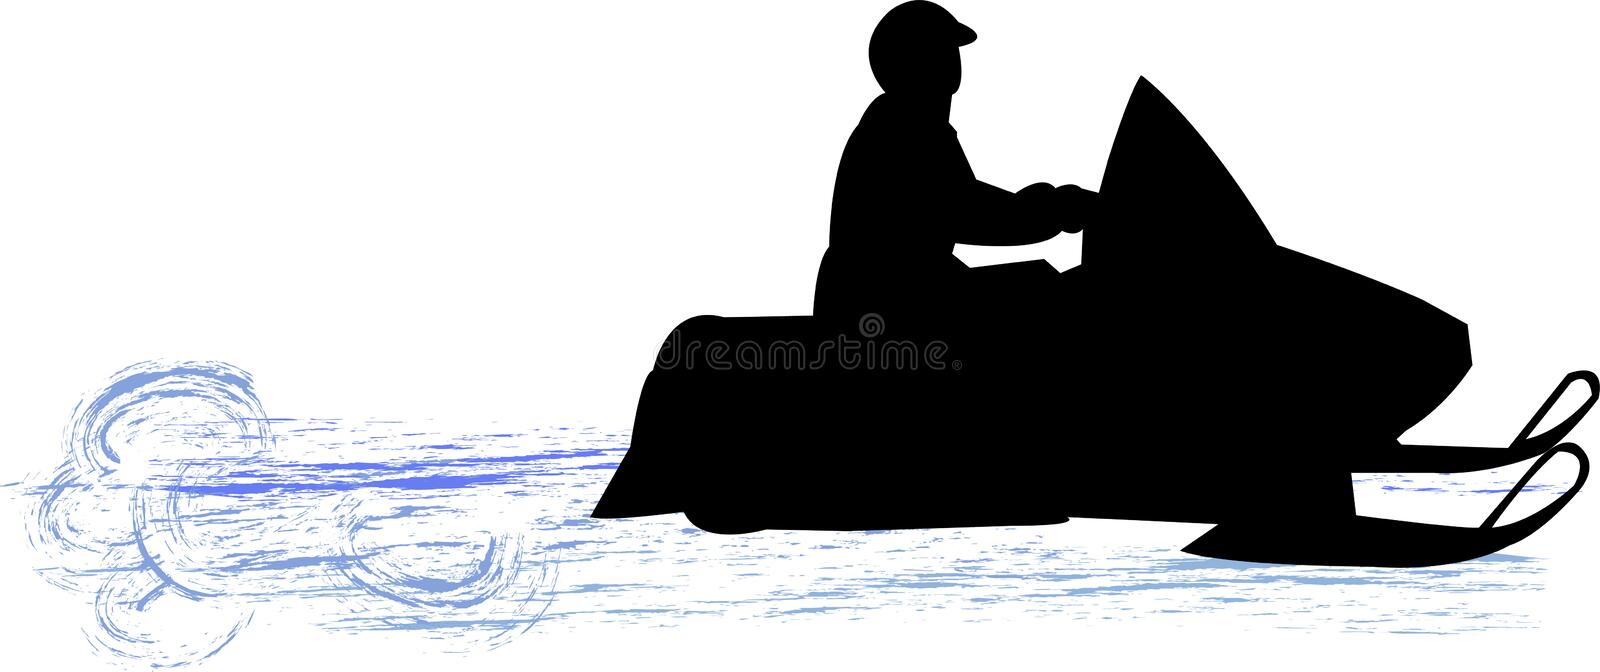 Snowmobile. Illustration of a a person riding a snowmobile vector illustration